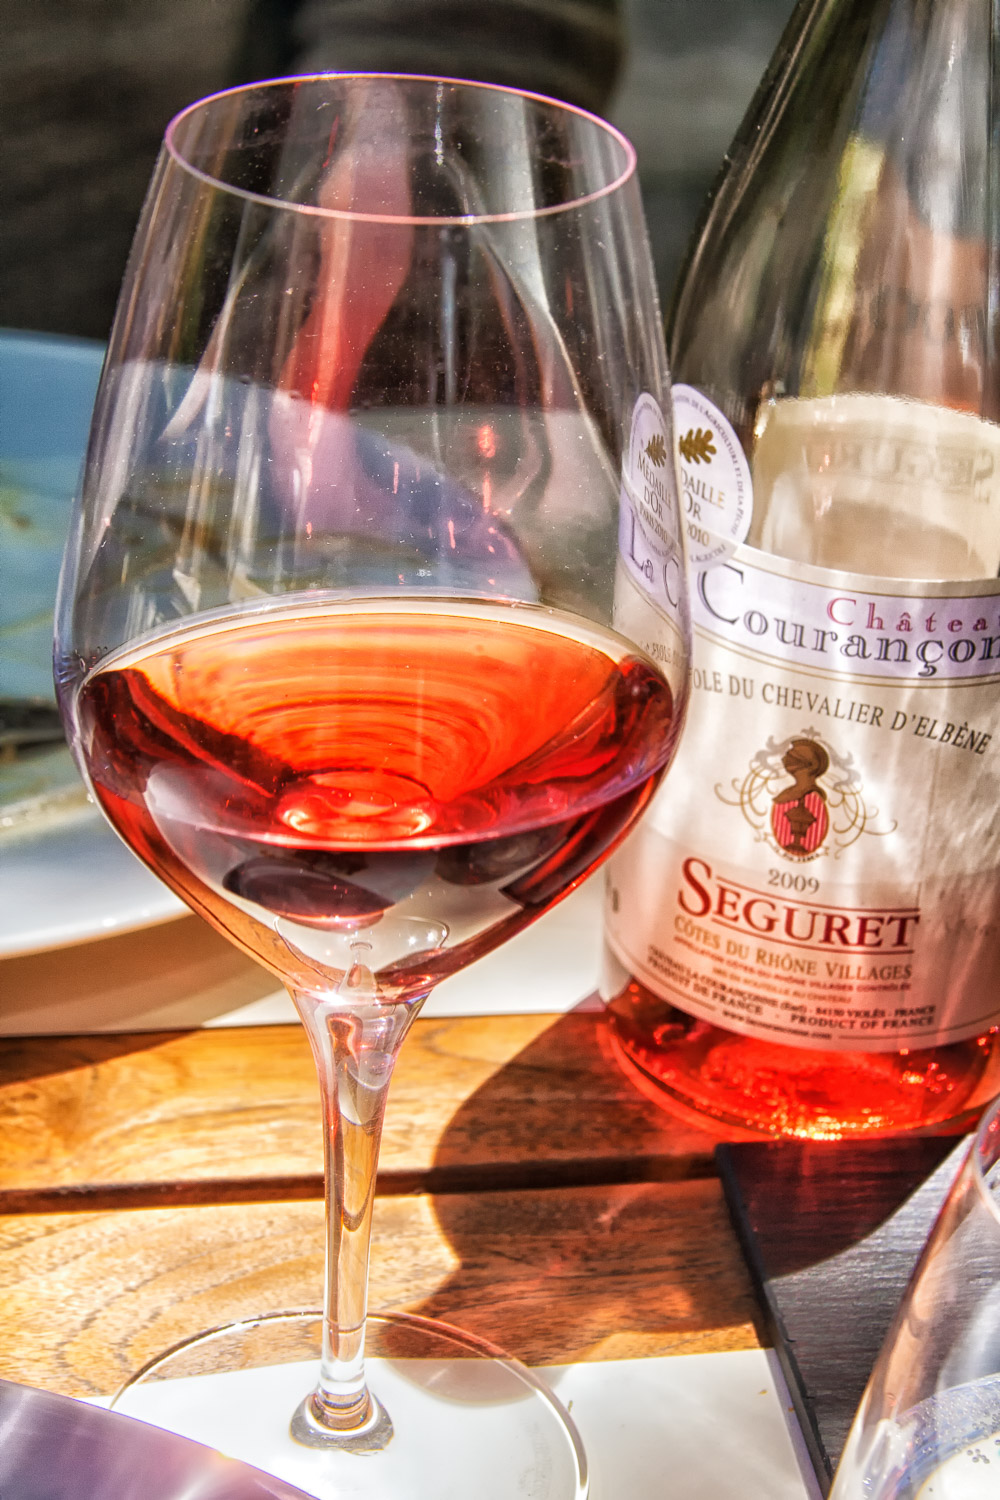 A deeply colored rosé from the Rhône Valley